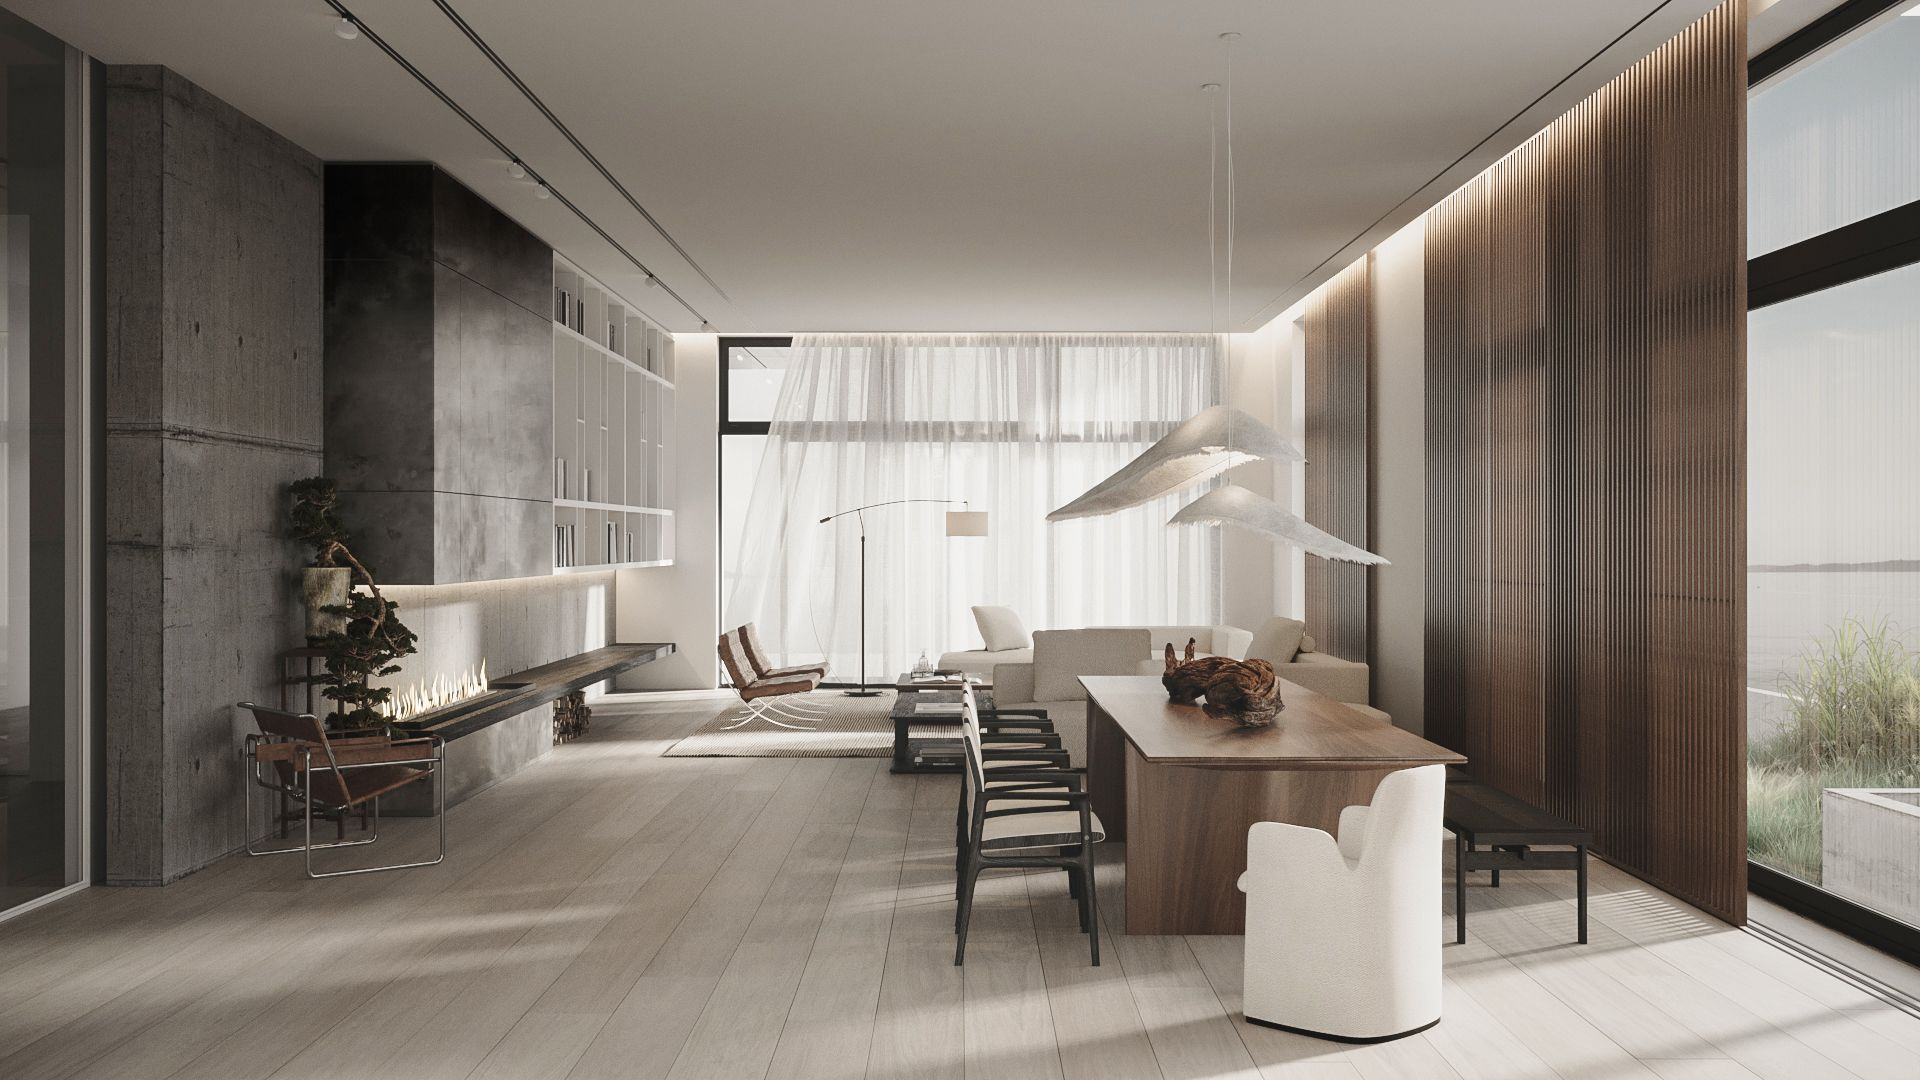 Сoncrete, metal and wood in the living room interior. in